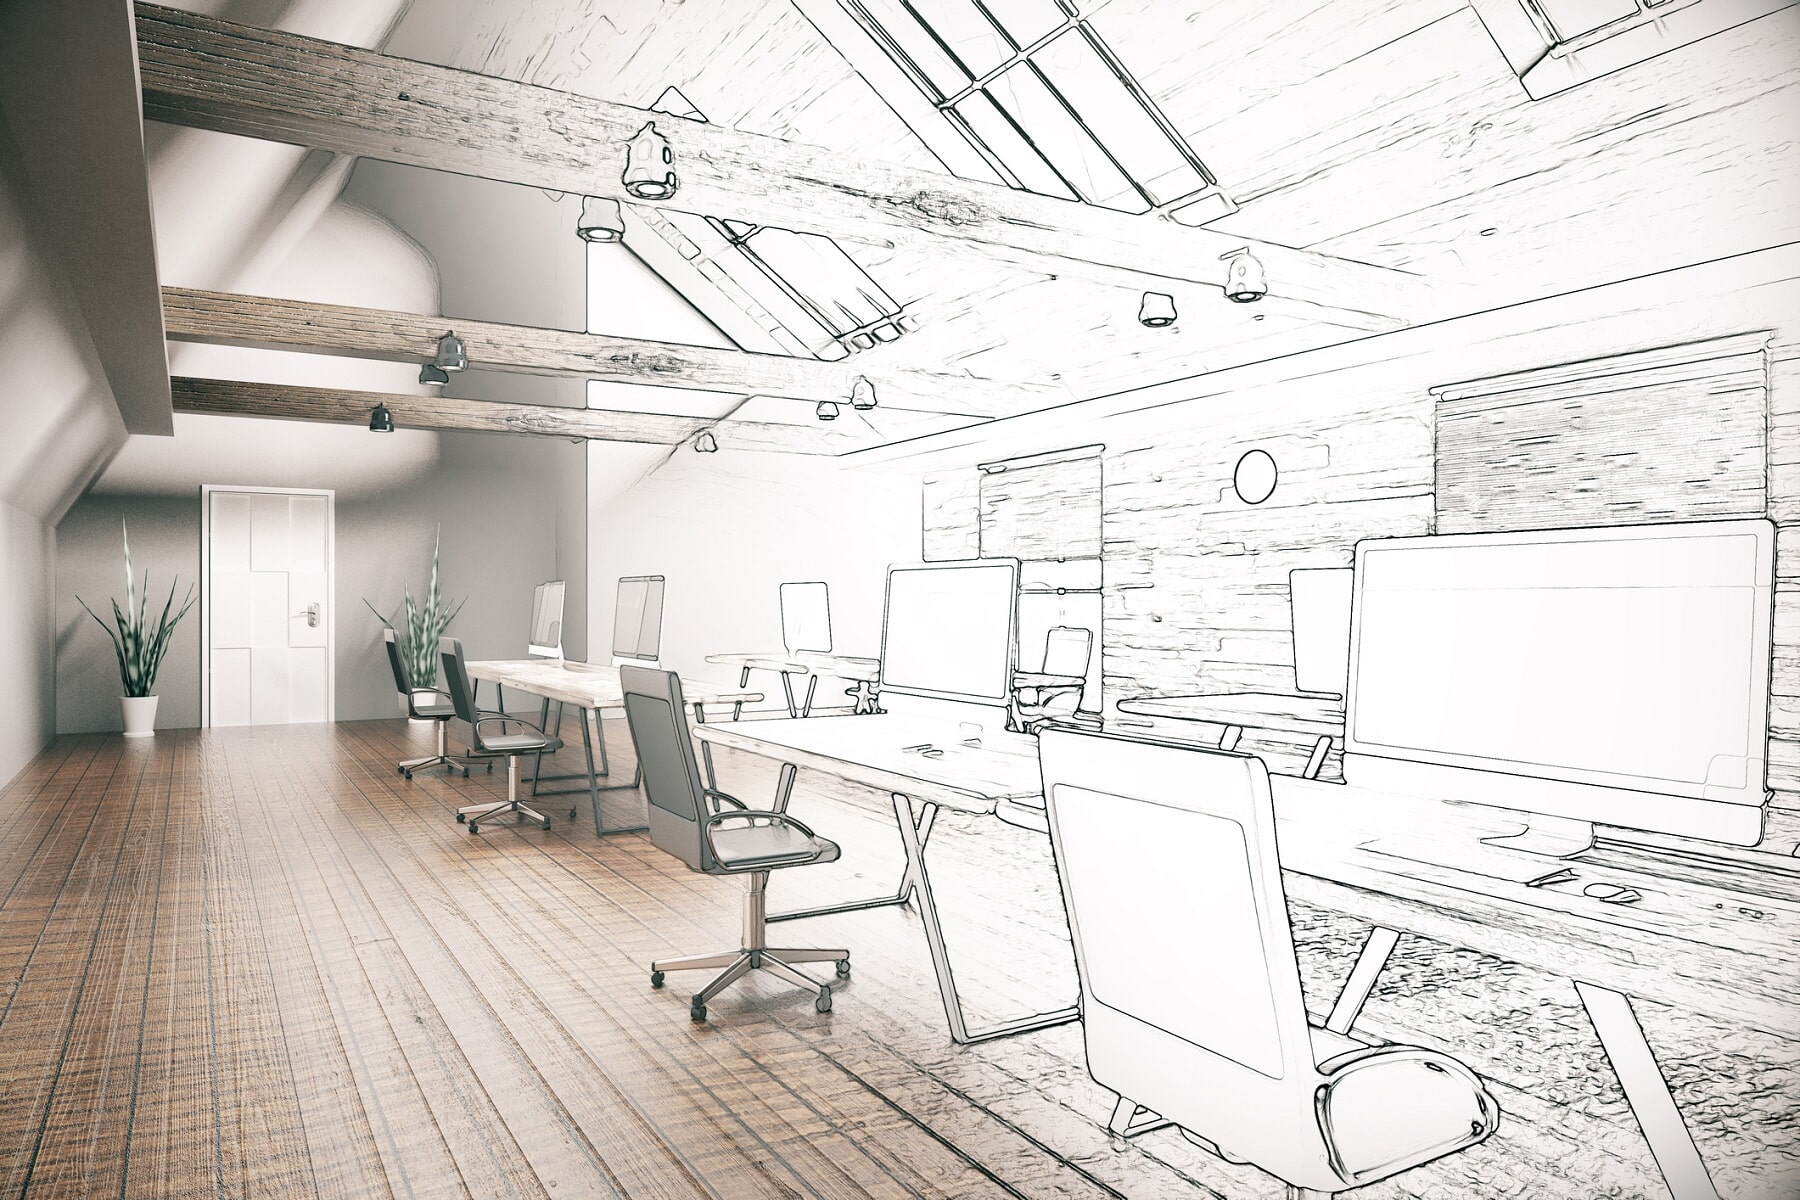 Interior Construction And Building Renovations